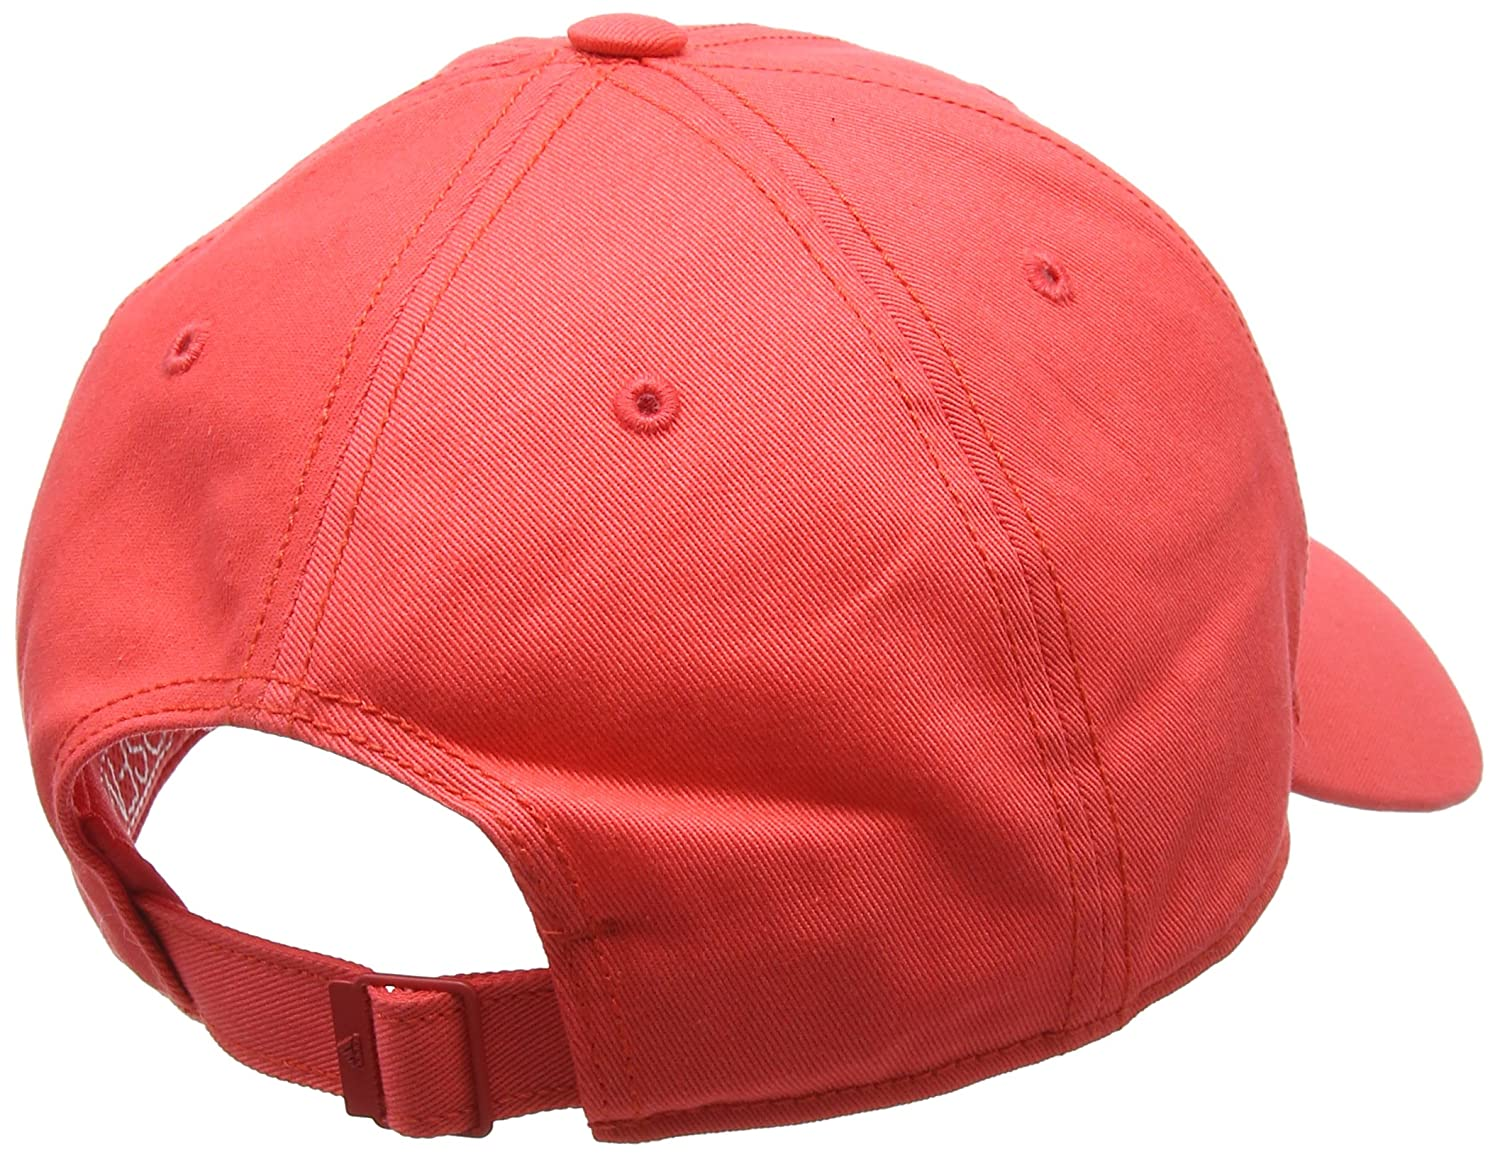 80056d4fa04 Adidas CF6916 Six-Panel Classic 3-Stripes Cap - Real Coral White Real  Coral